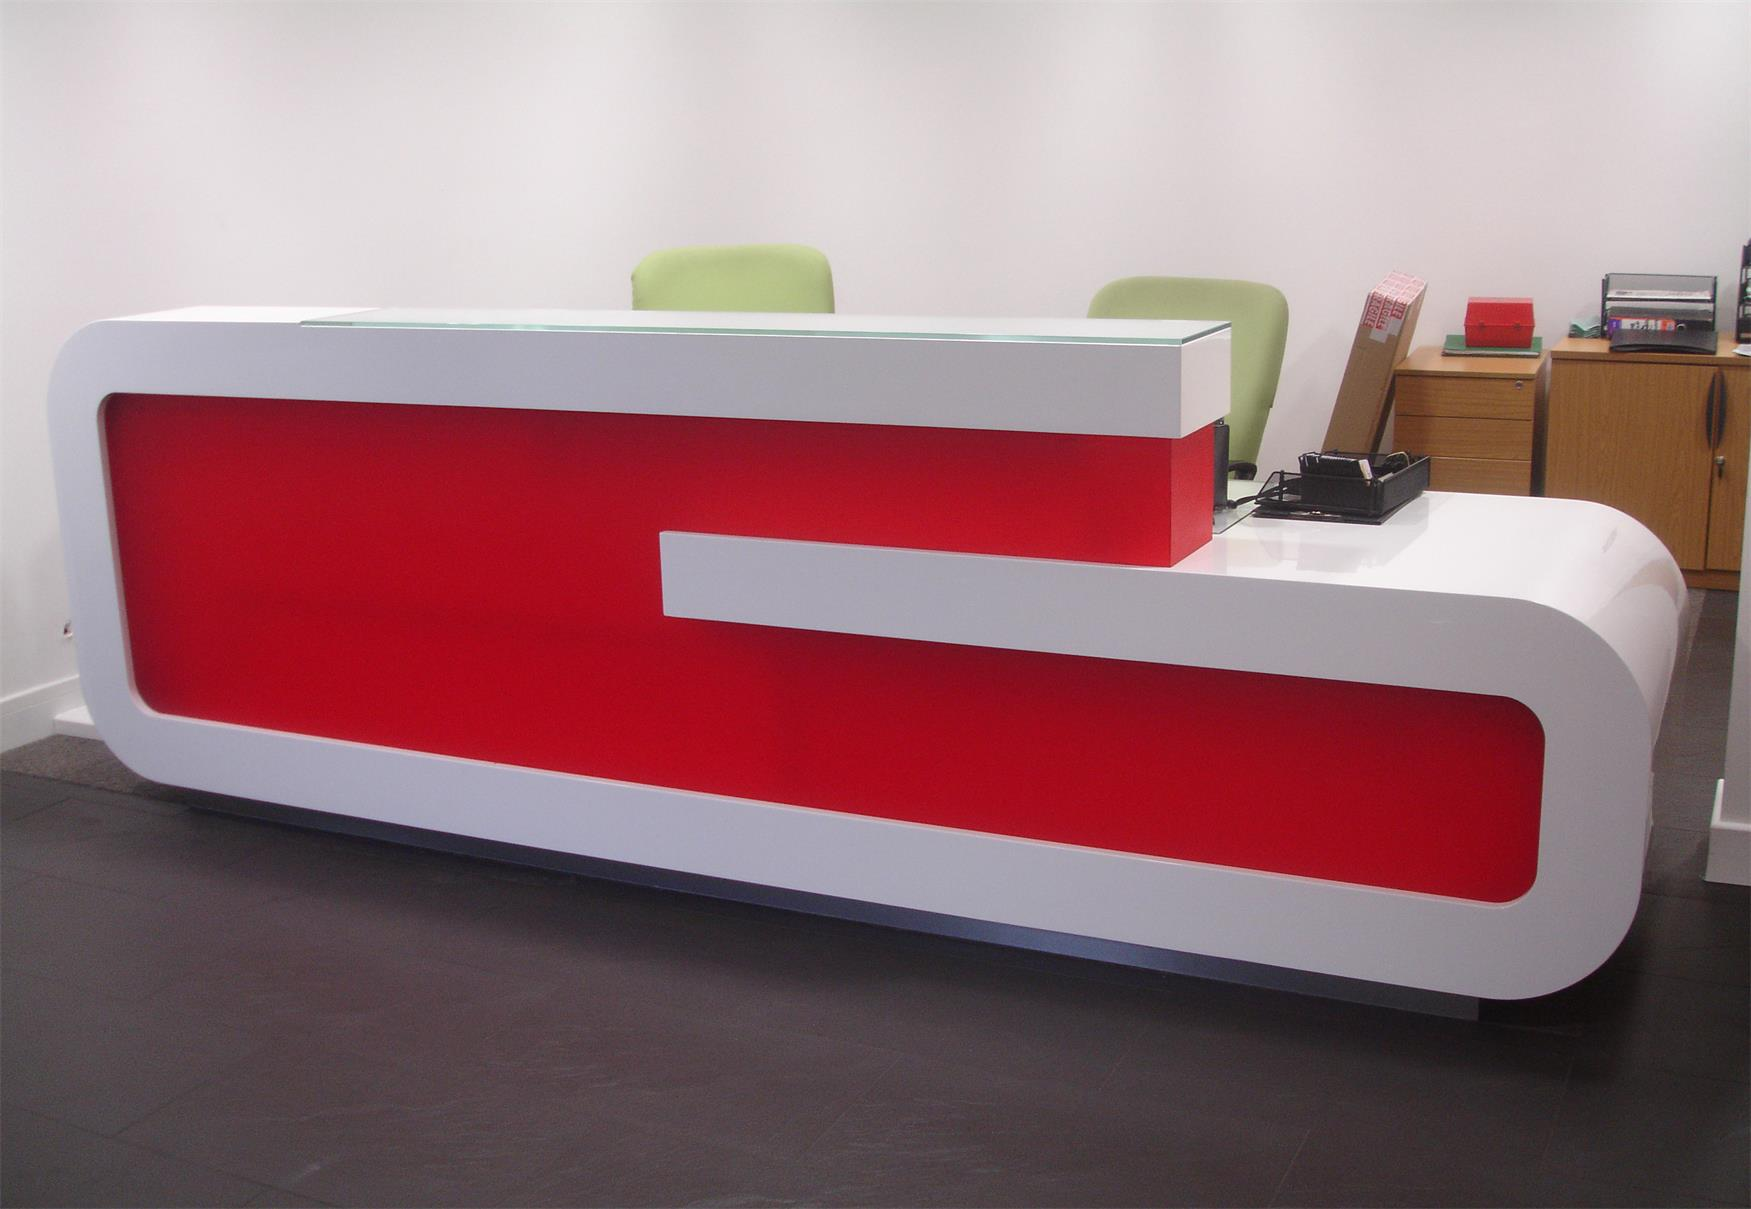 G Shape Custom Design Reception Desk Supplier Red White